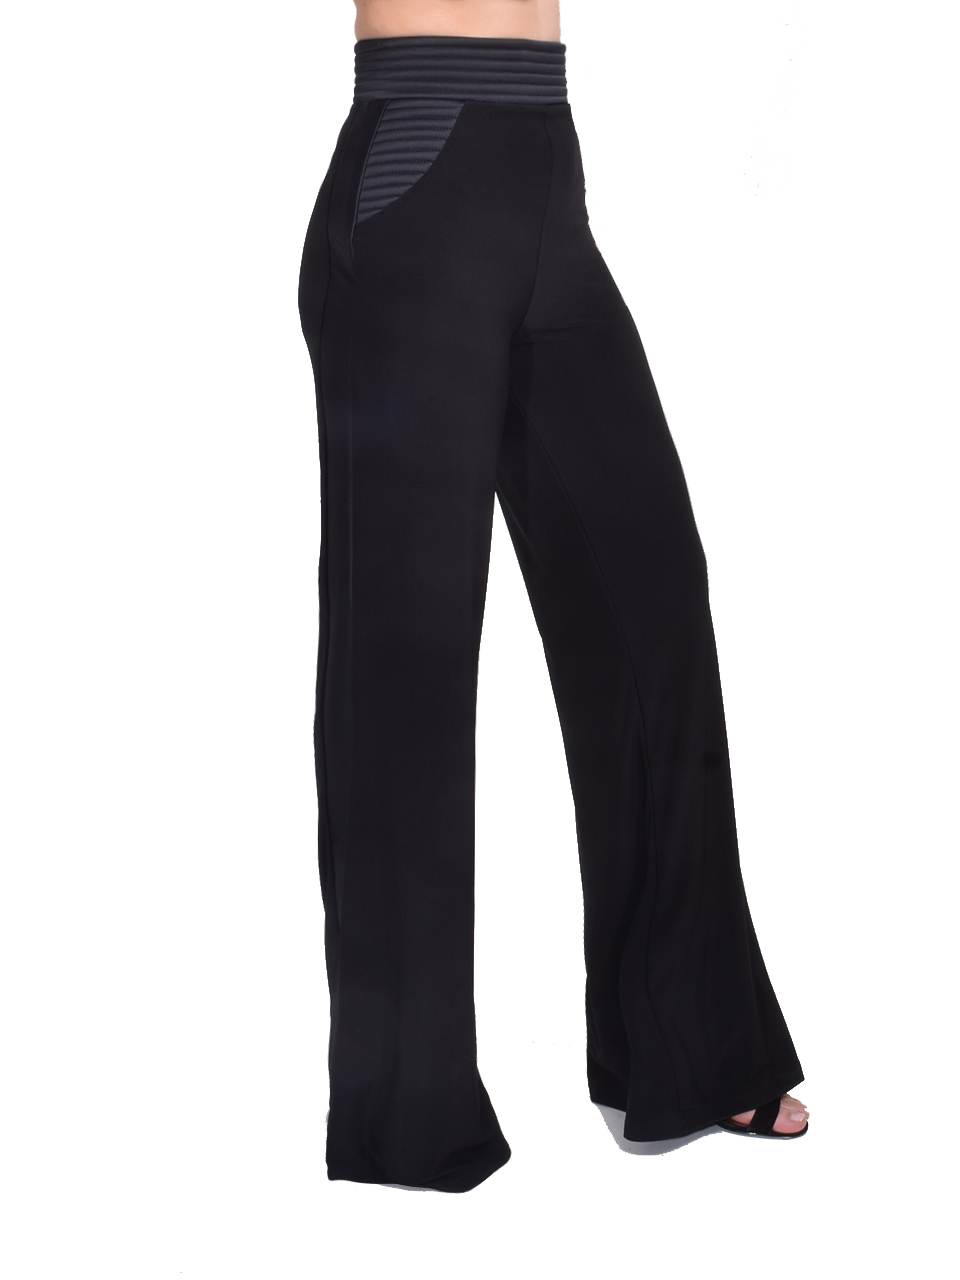 Zhivago Ready Wide Leg Pant in Black Side View